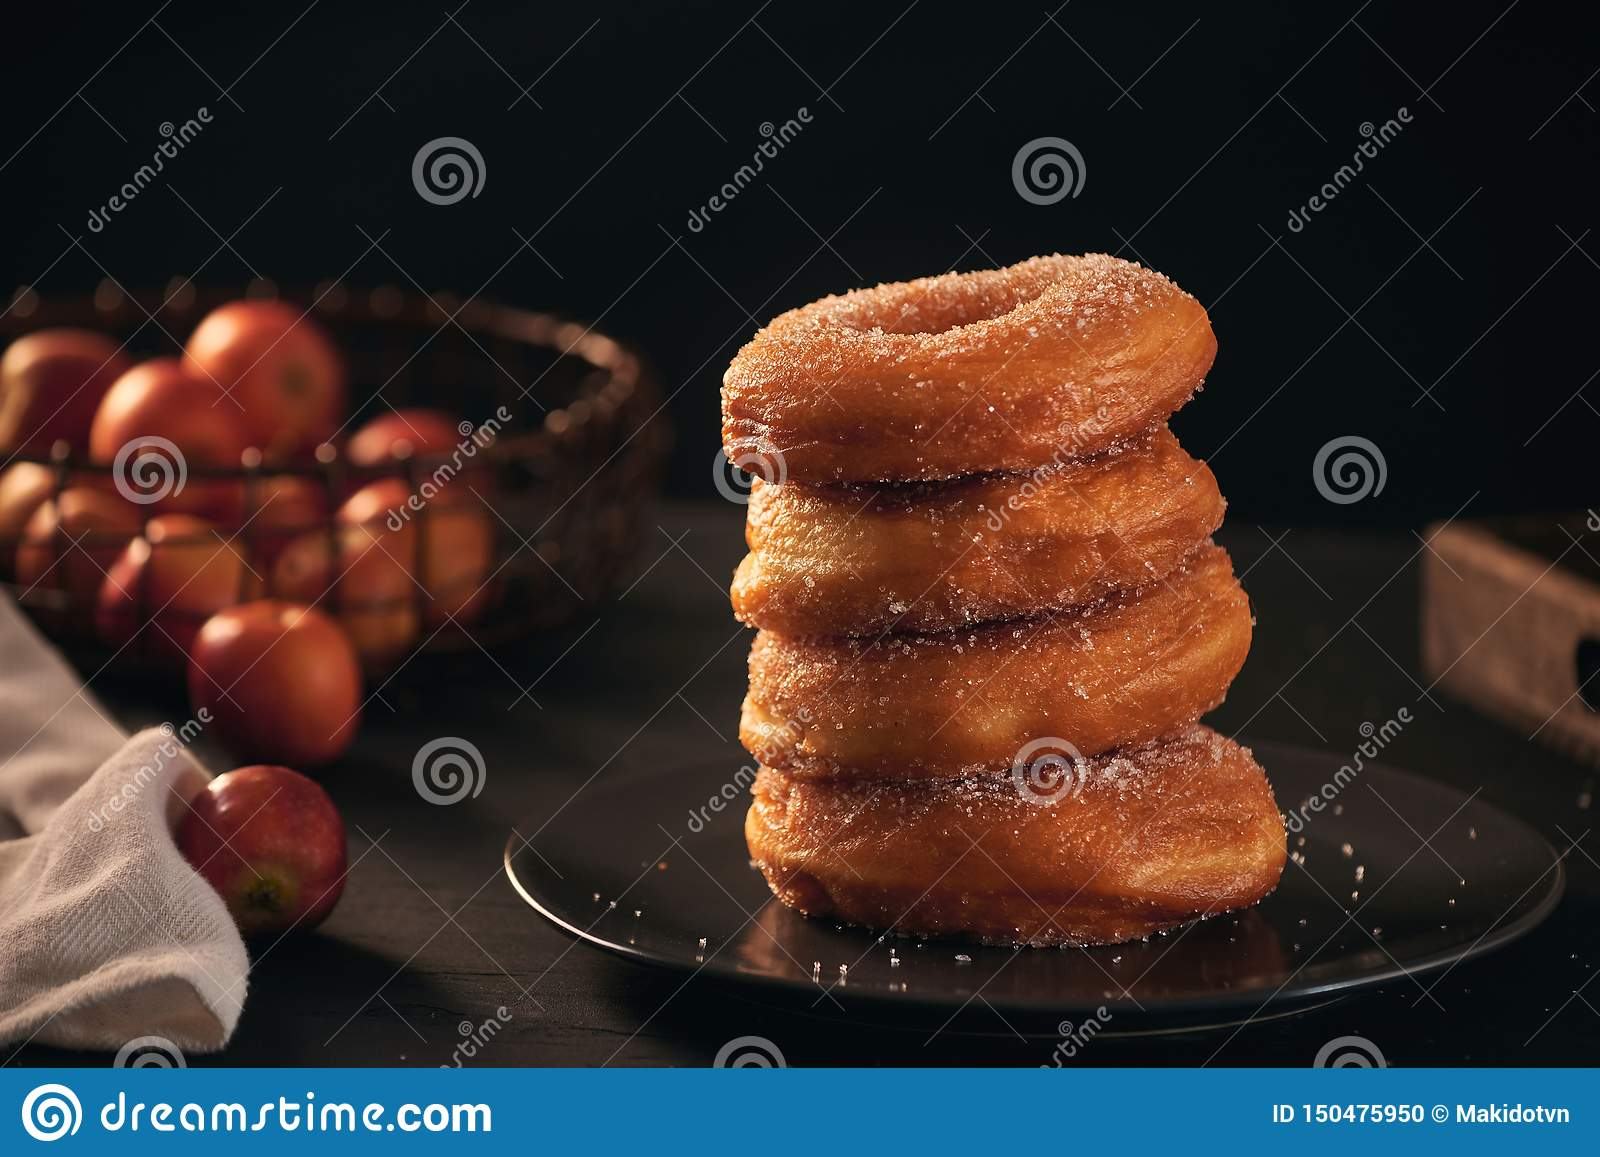 Stack of assorted donuts on a plate with milk on black background